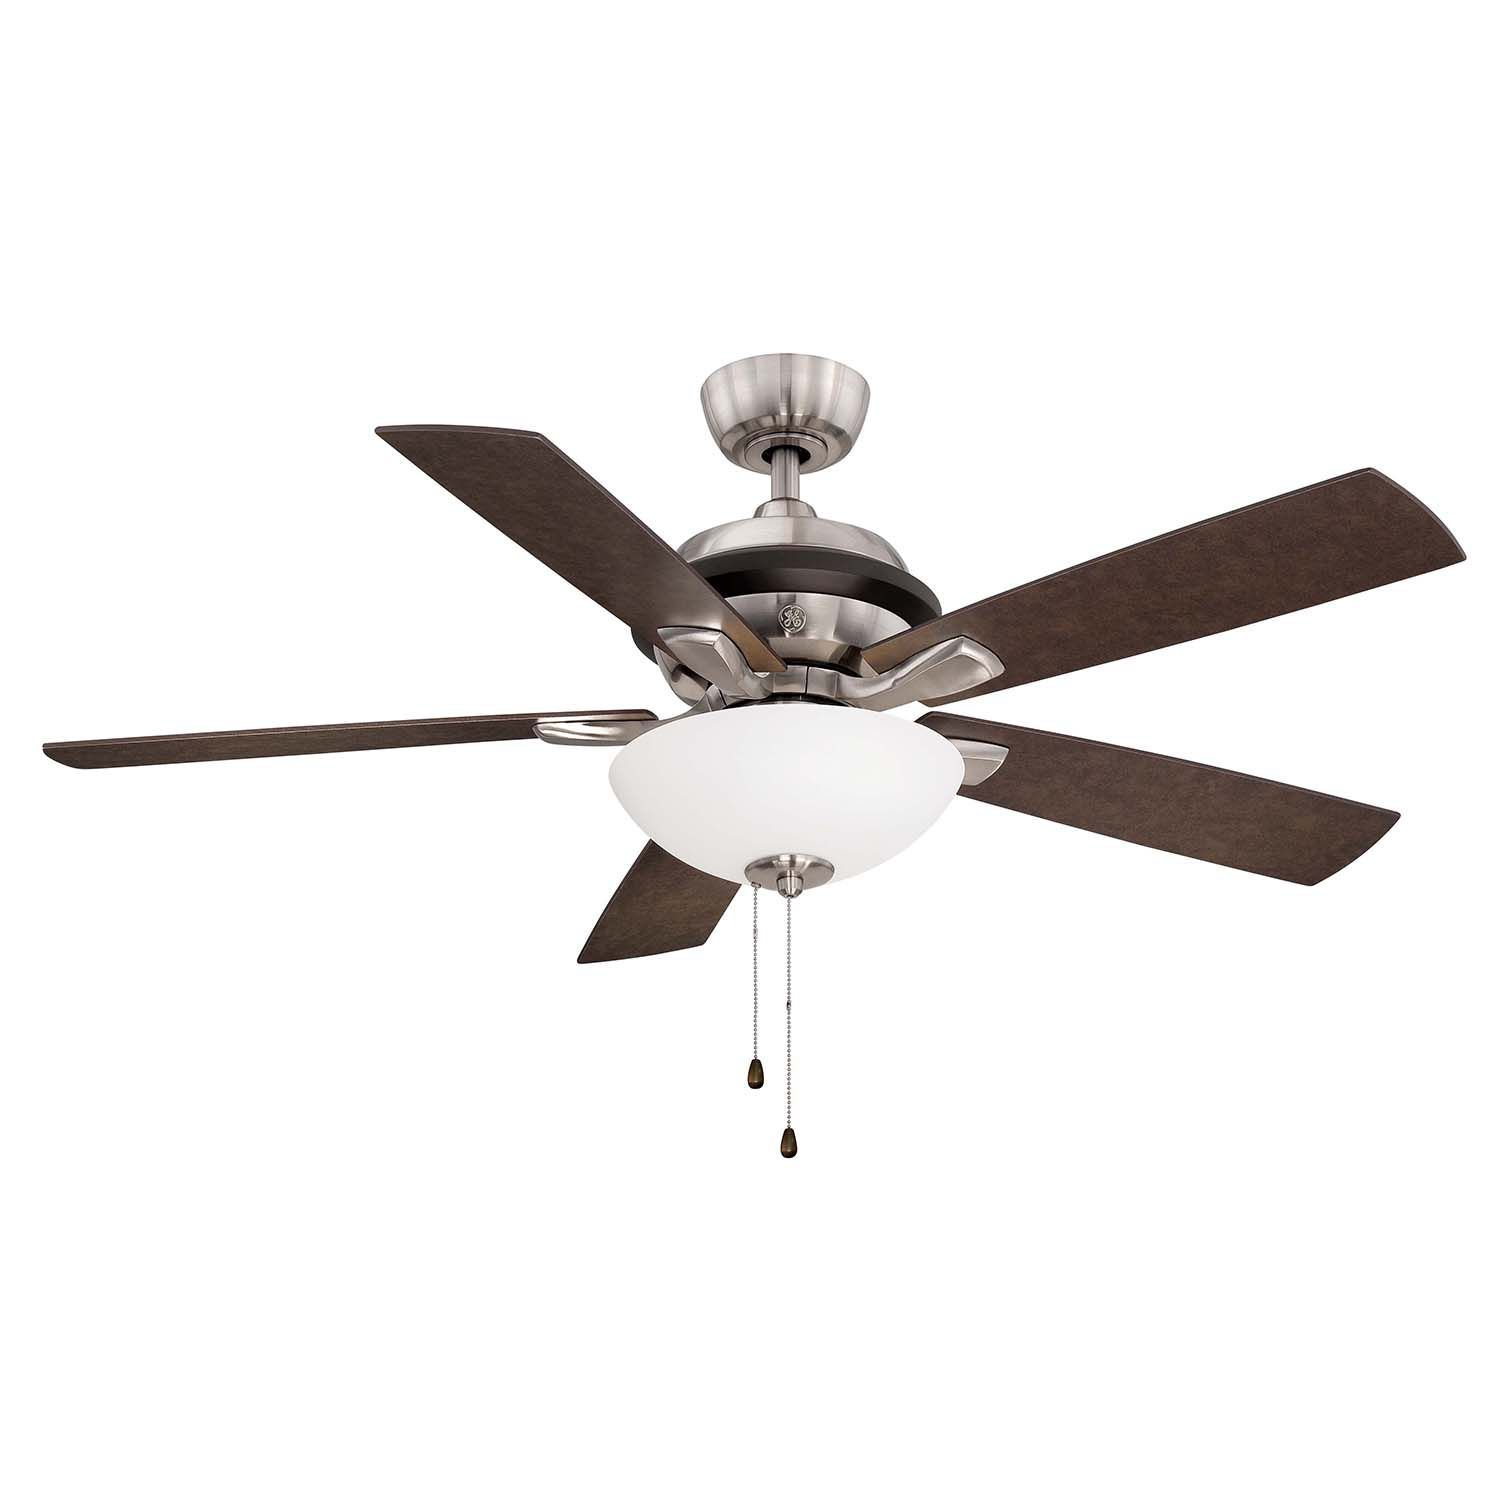 Cheap Ge Ceiling Fan, find Ge Ceiling Fan deals on line at Alibaba.com